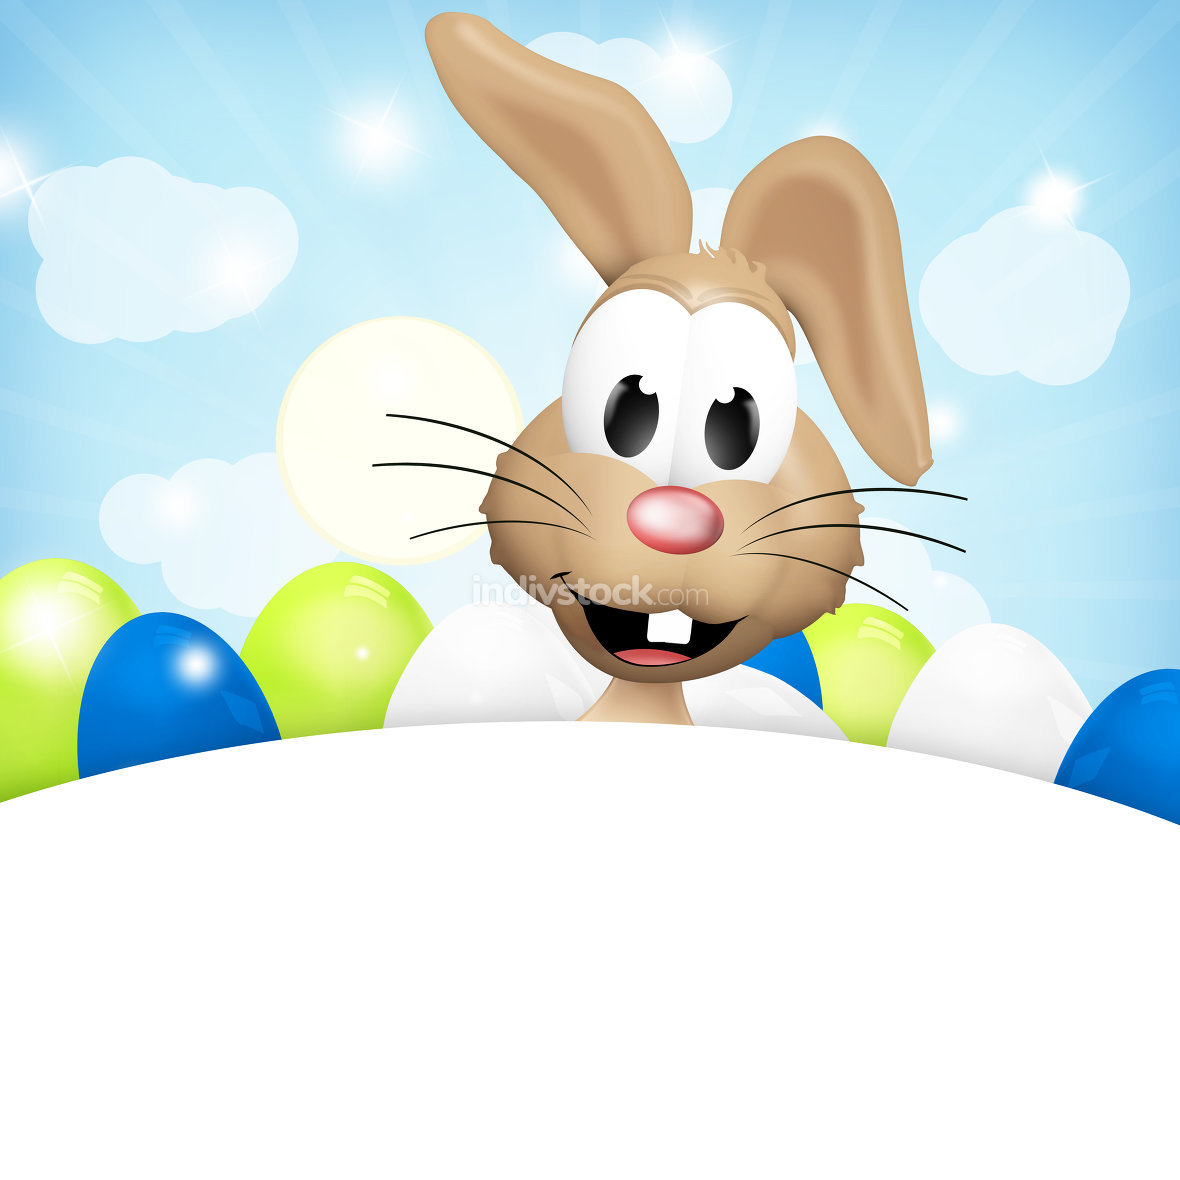 easter bunny light sky blue white bright